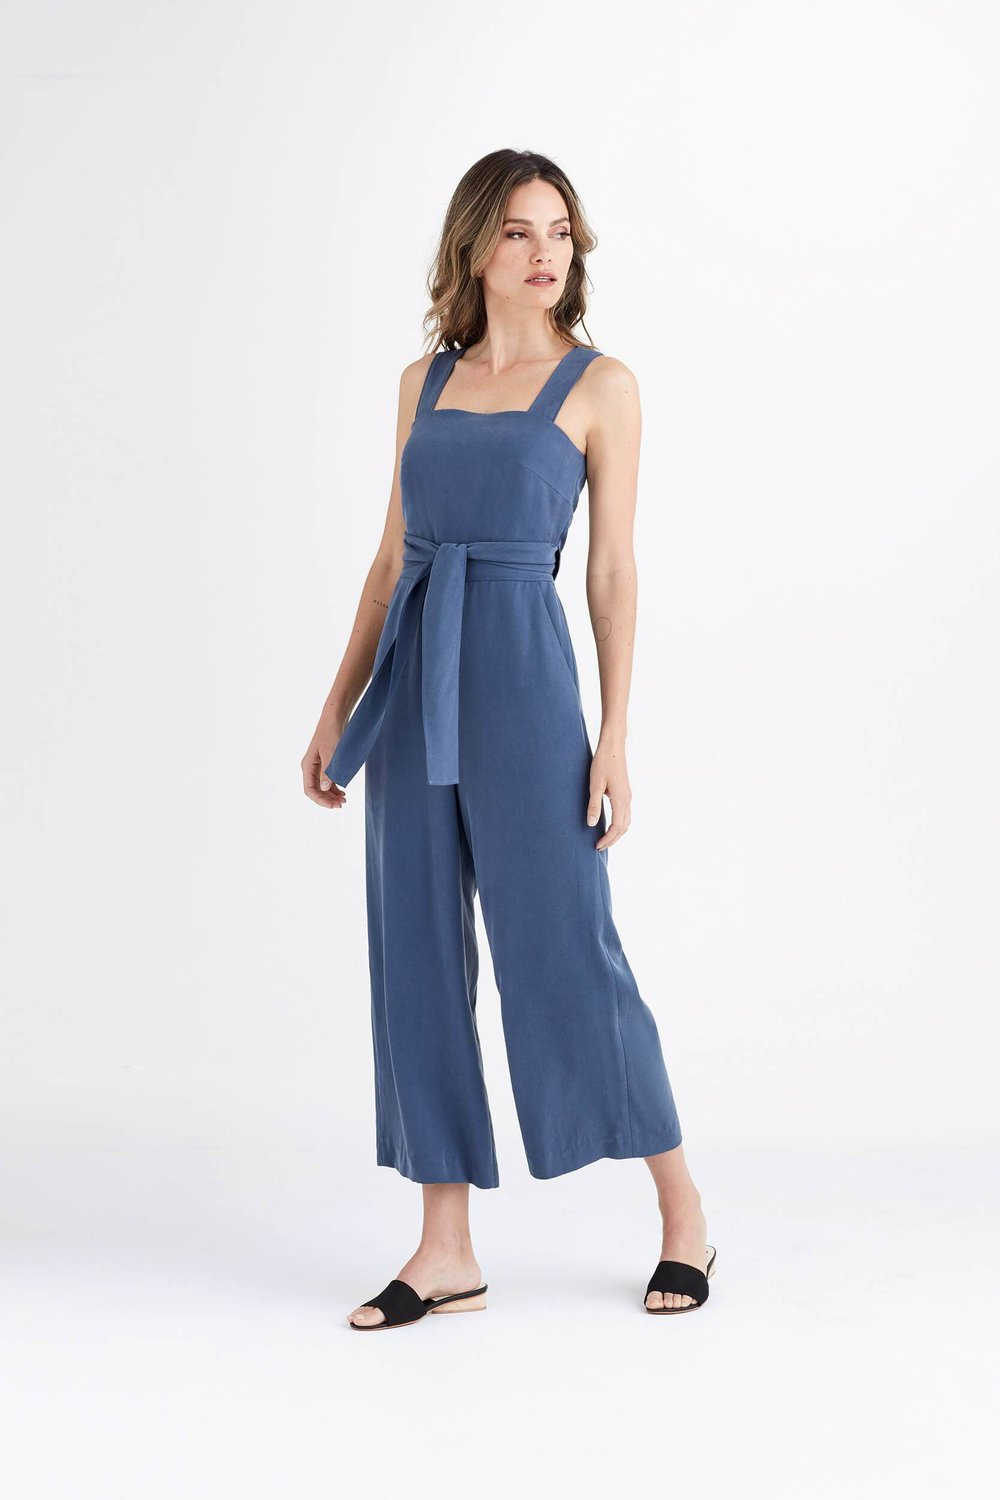 The Apron Jumpsuit - $149